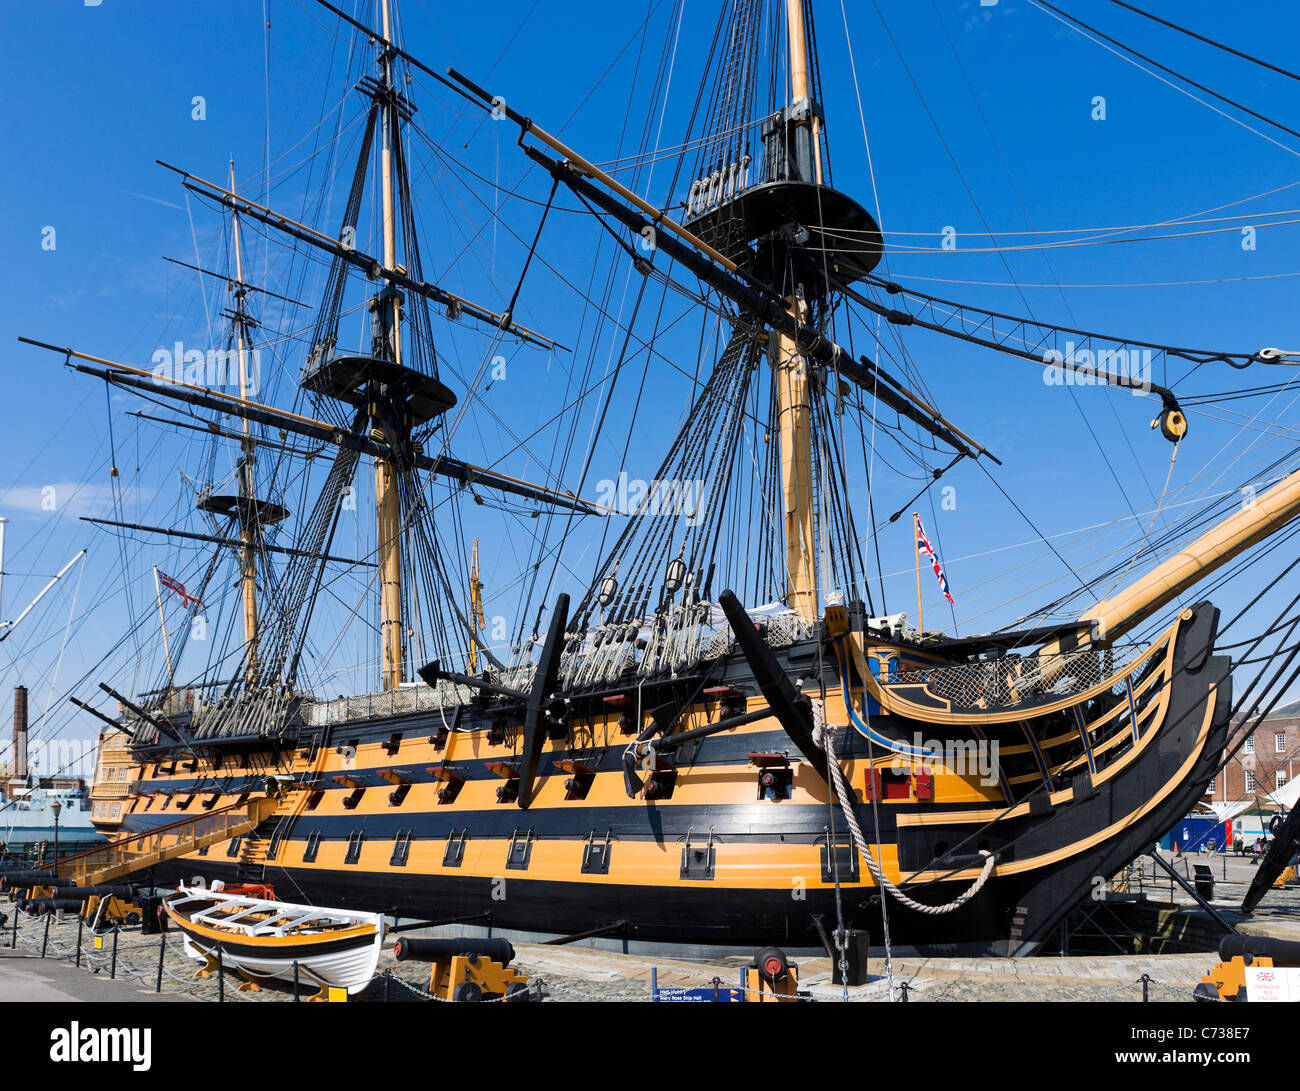 Lord Nelson's flagship HMS Victory in Portsmouth Historic Dockyard, Portsmouth, Hampshire, England, UK - Stock Image